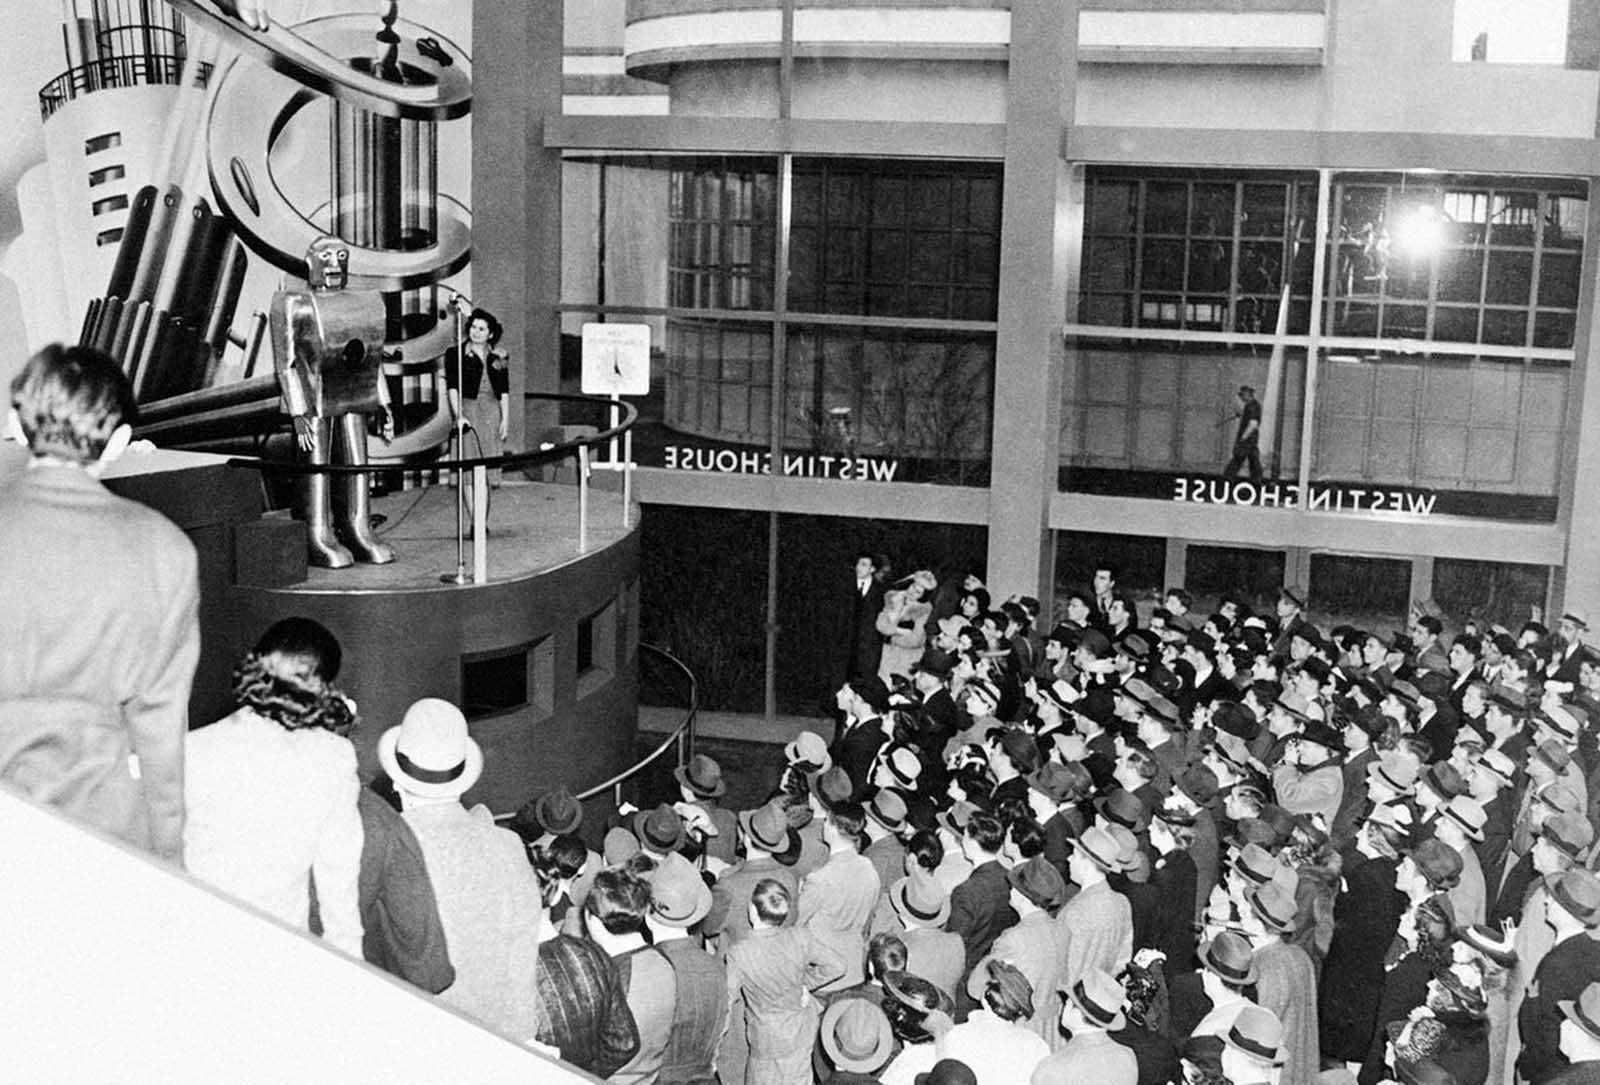 Jamming every inch of space in the huge Hall of Electrical Living at the Westinghouse Building at the World's Fair, crowds stand 6 deep on the sidewalk outside the glass-enclosed structure to watch Elektro, the Westinghouse Moto-Man, perform his 26 mechanical tricks, including, walking, talking, smoking a cigarette and counting, on May 8, 1939.